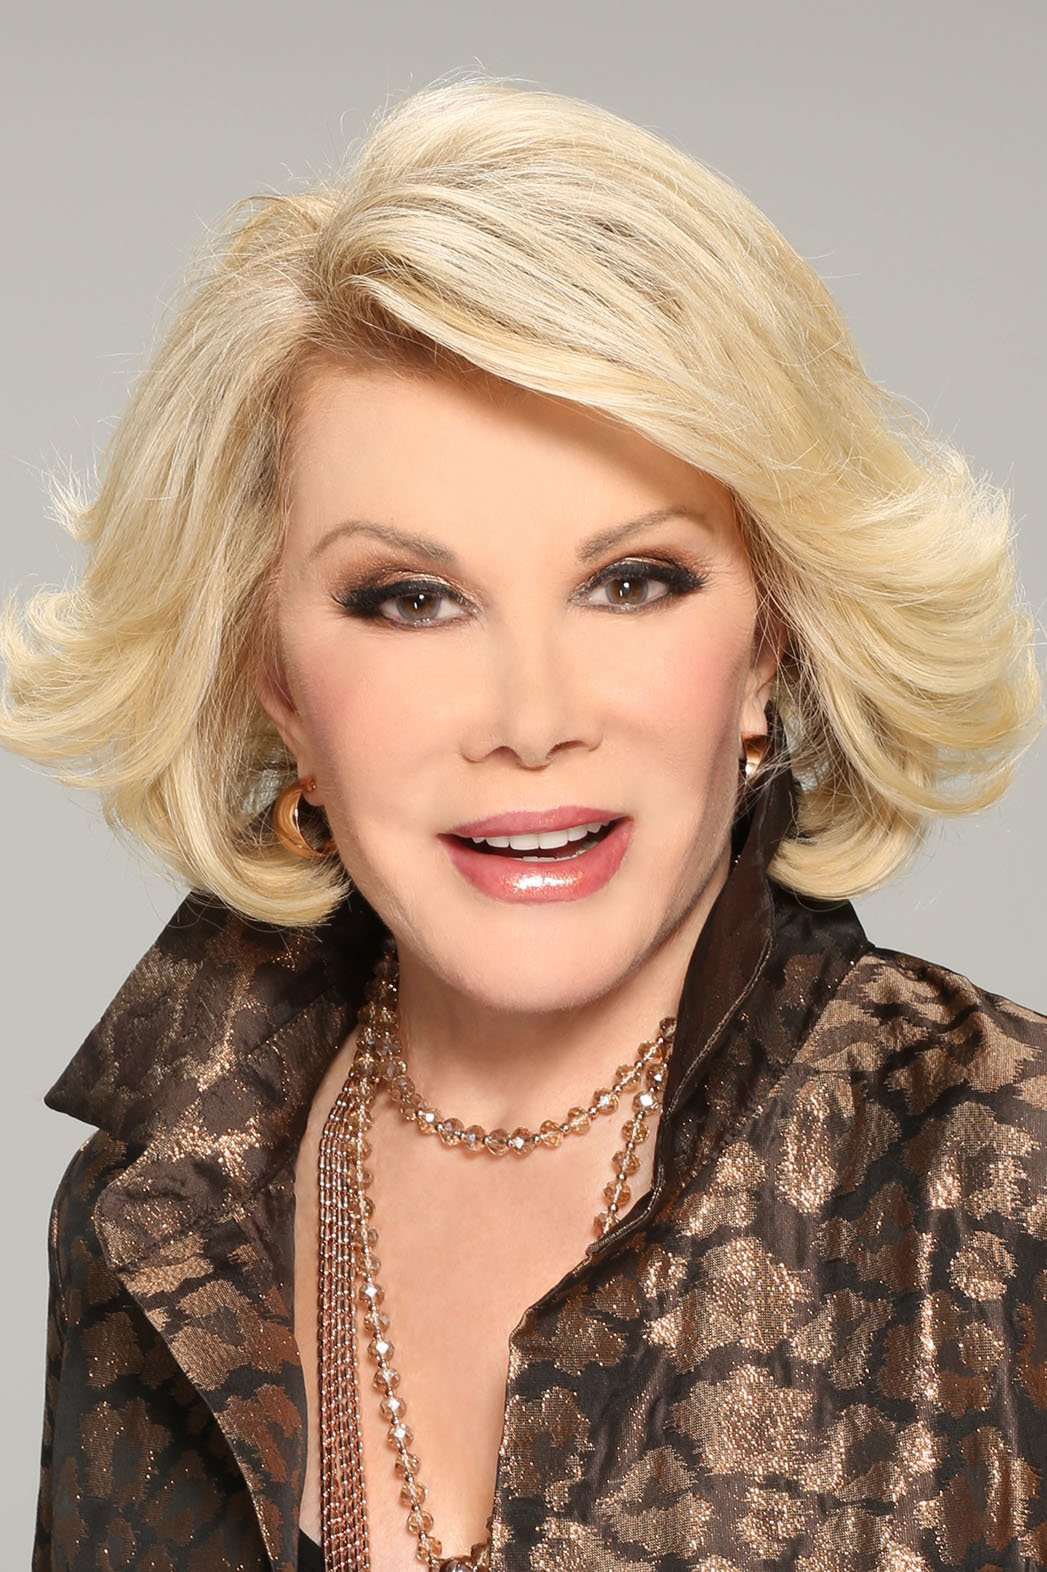 Joan Rivers in critical condition after complications during throat surgery